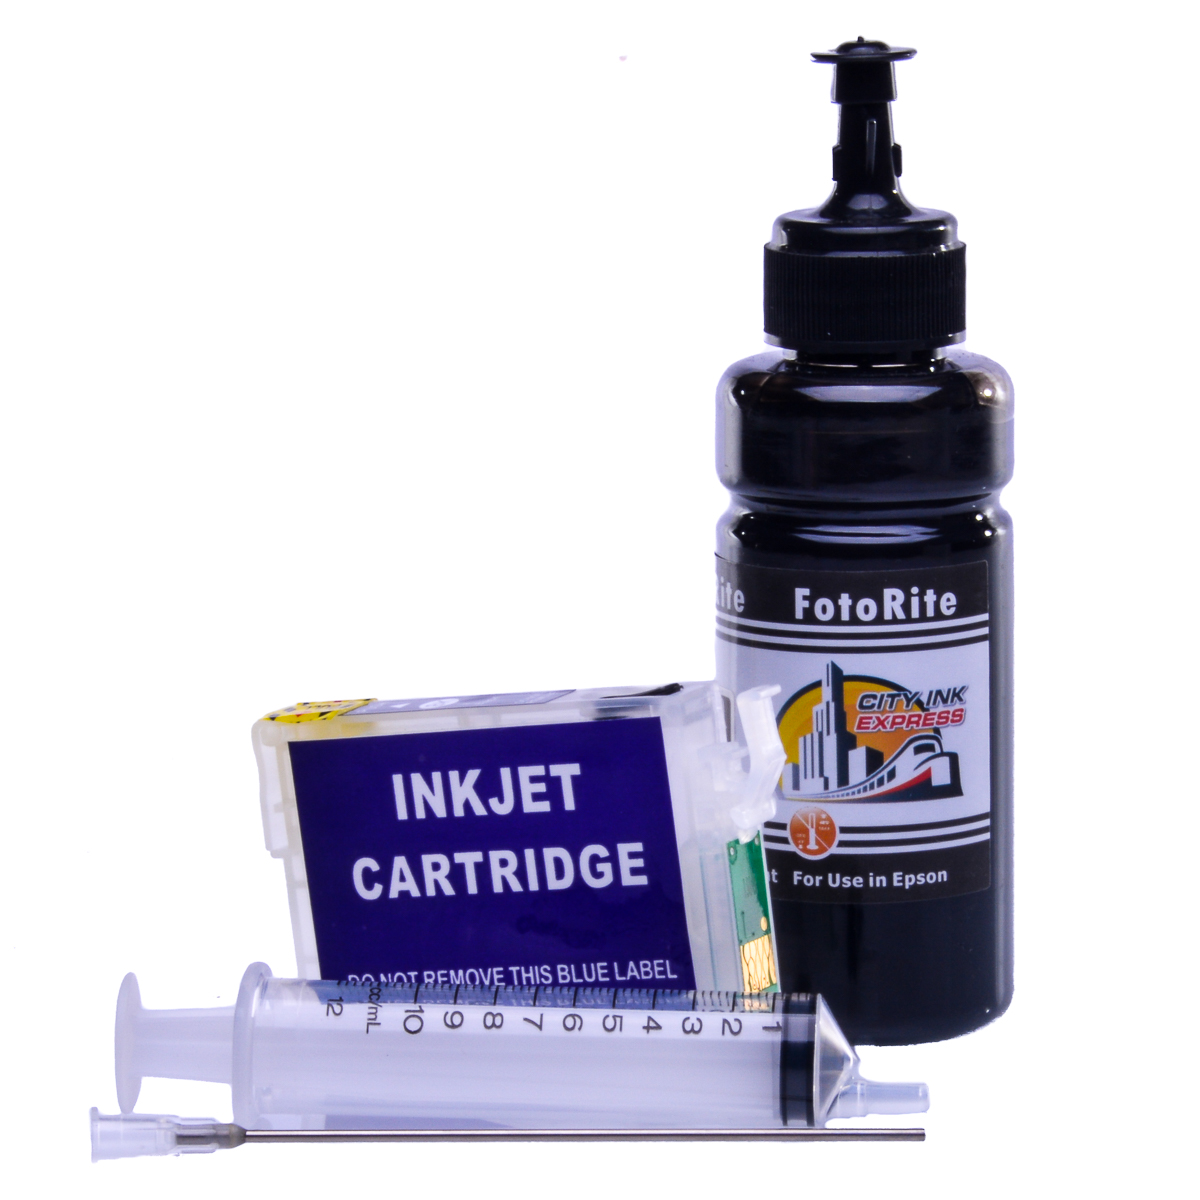 Refillable pigment Cheap printer cartridges for Epson Stylus D78 C13T07114010 T0711 Black